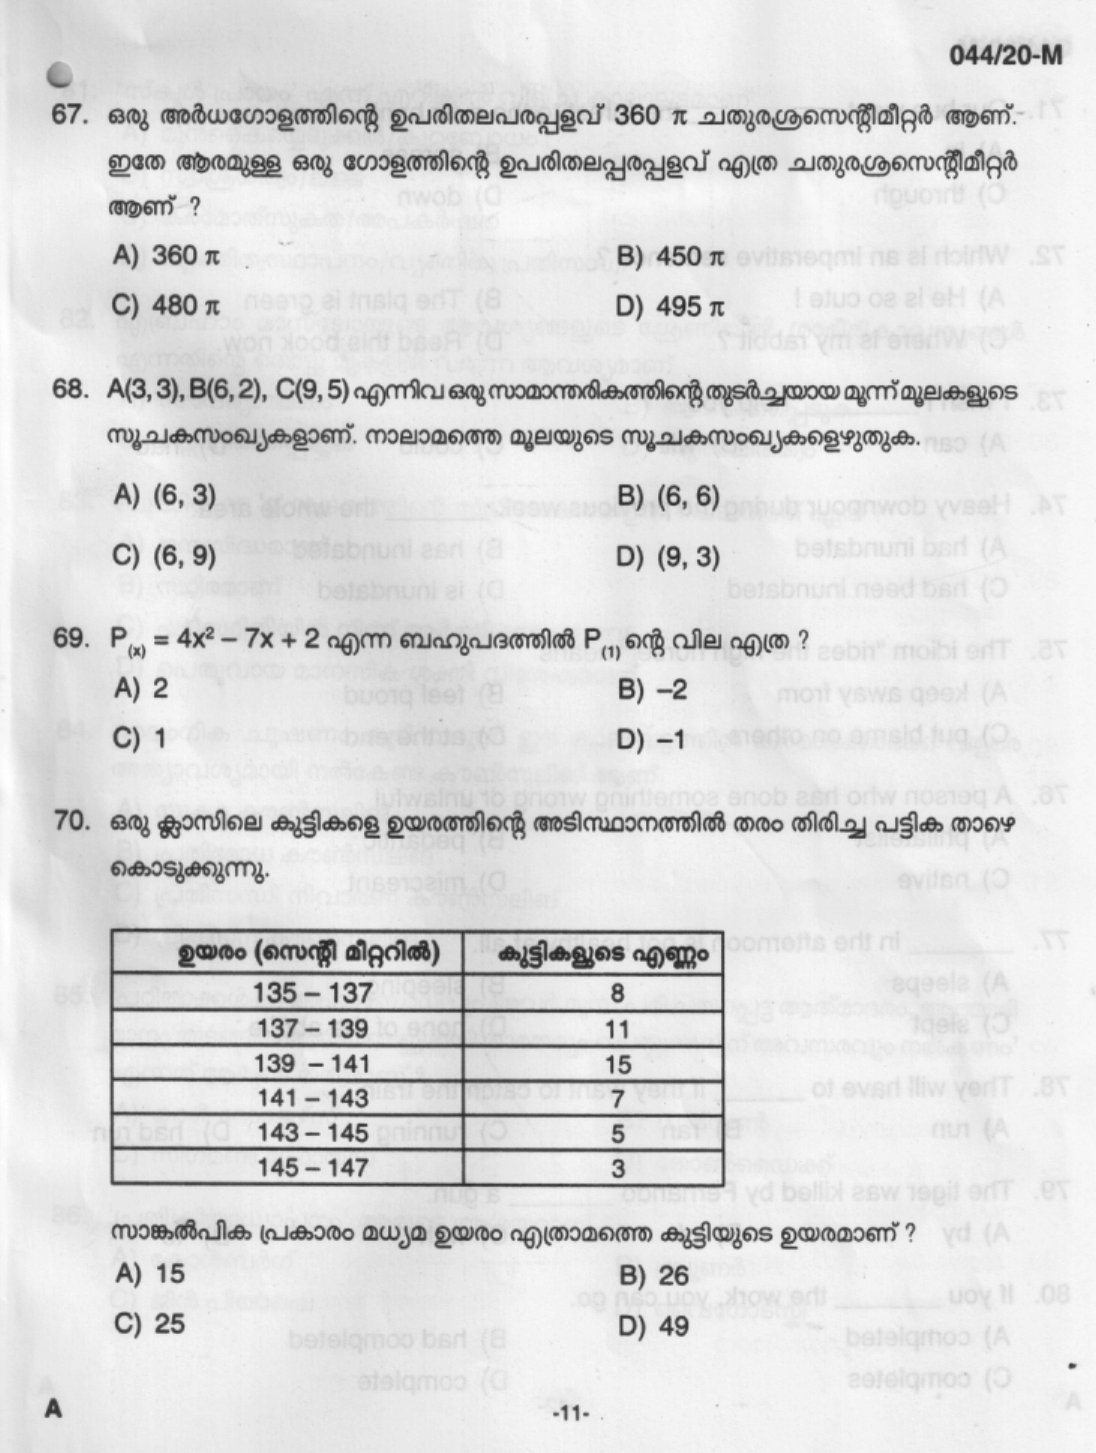 UP School Teacher Question paper with Answer Key 44/209